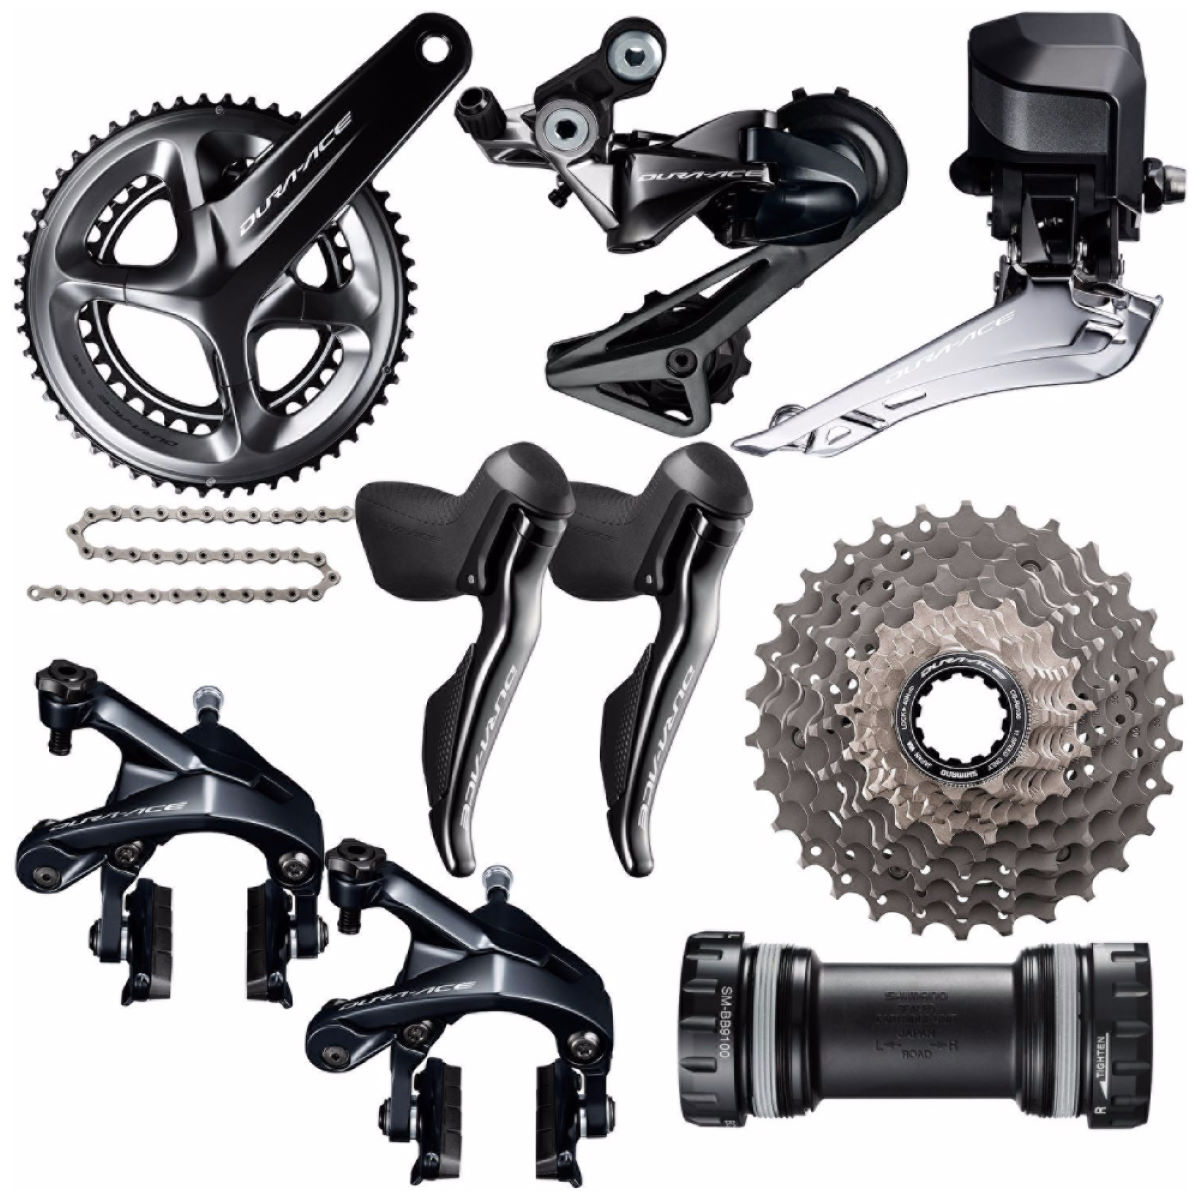 Groupe Shimano Dura Ace 9150 Di2 - 50-34, 172.5mm Noir Groupes